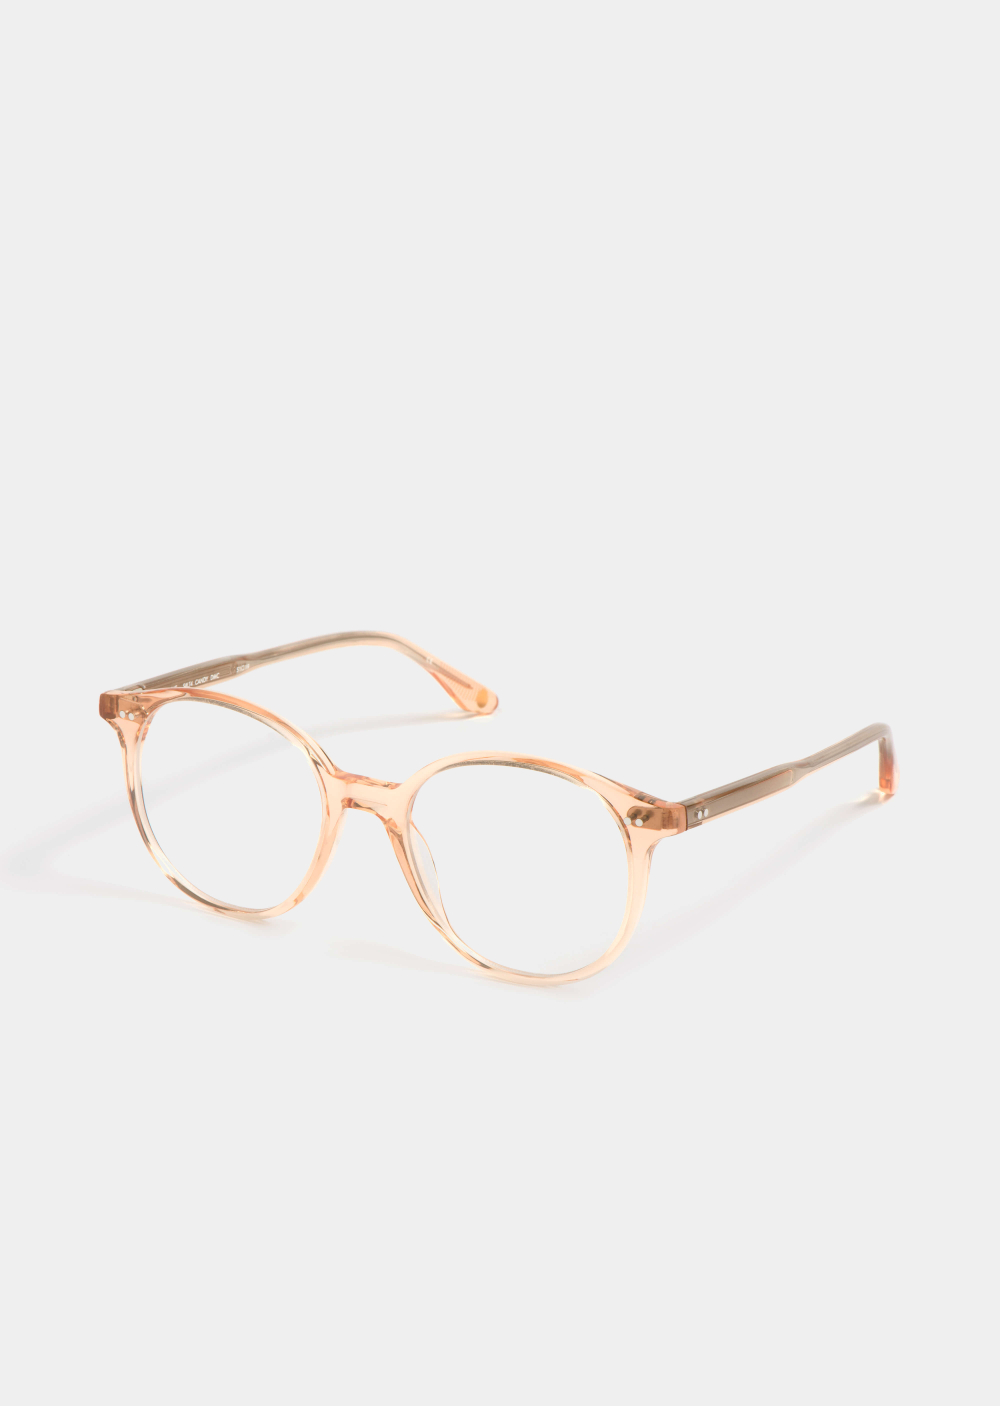 PETER AND MAY -  - LT4 Candy RX demoiselle champagne